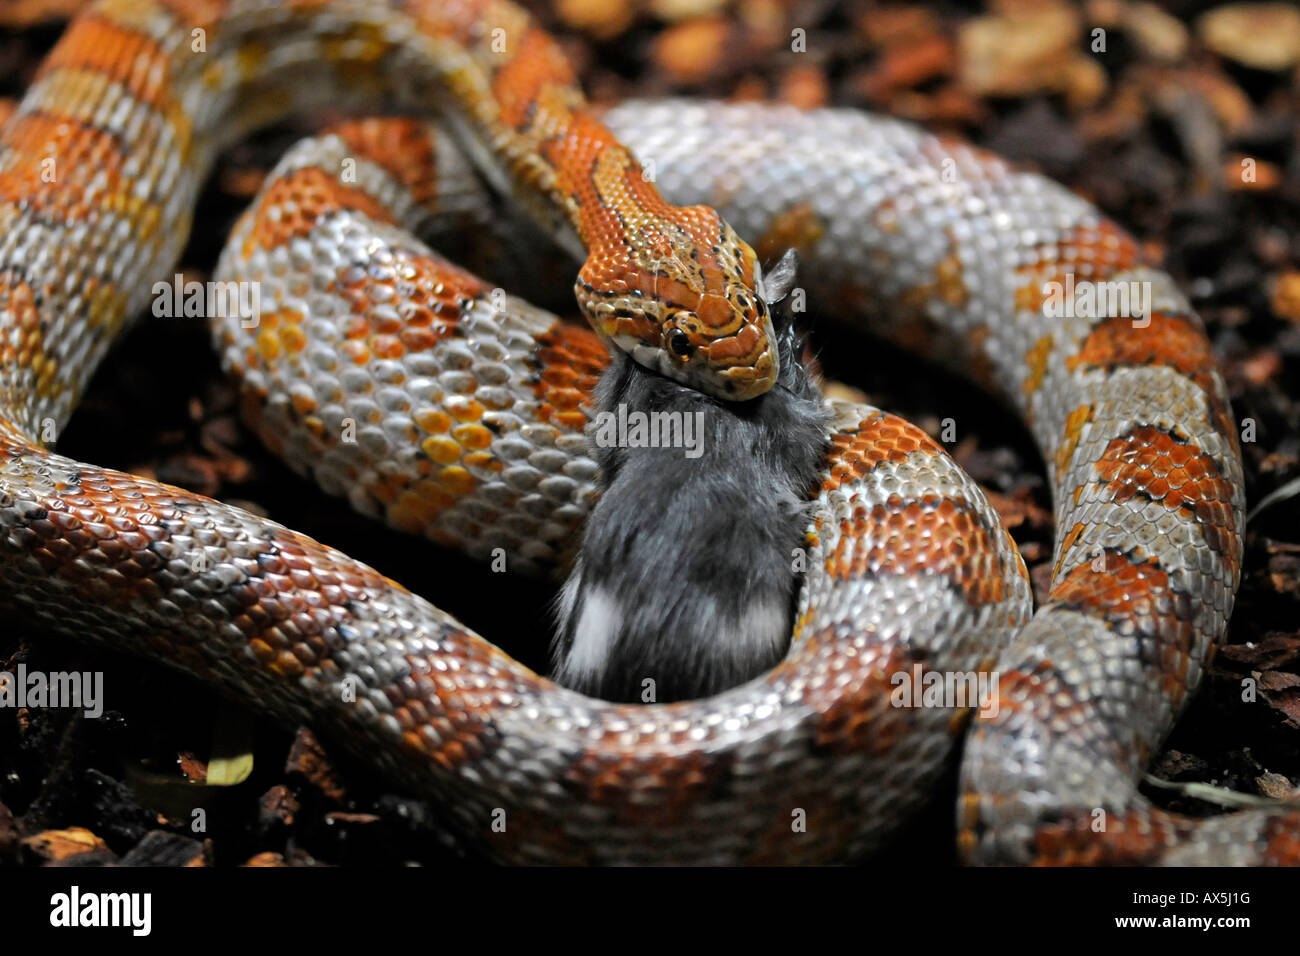 Corn Snake or Red Rat Snake (Pantherophis guttatus) eating a mouse - Stock Image